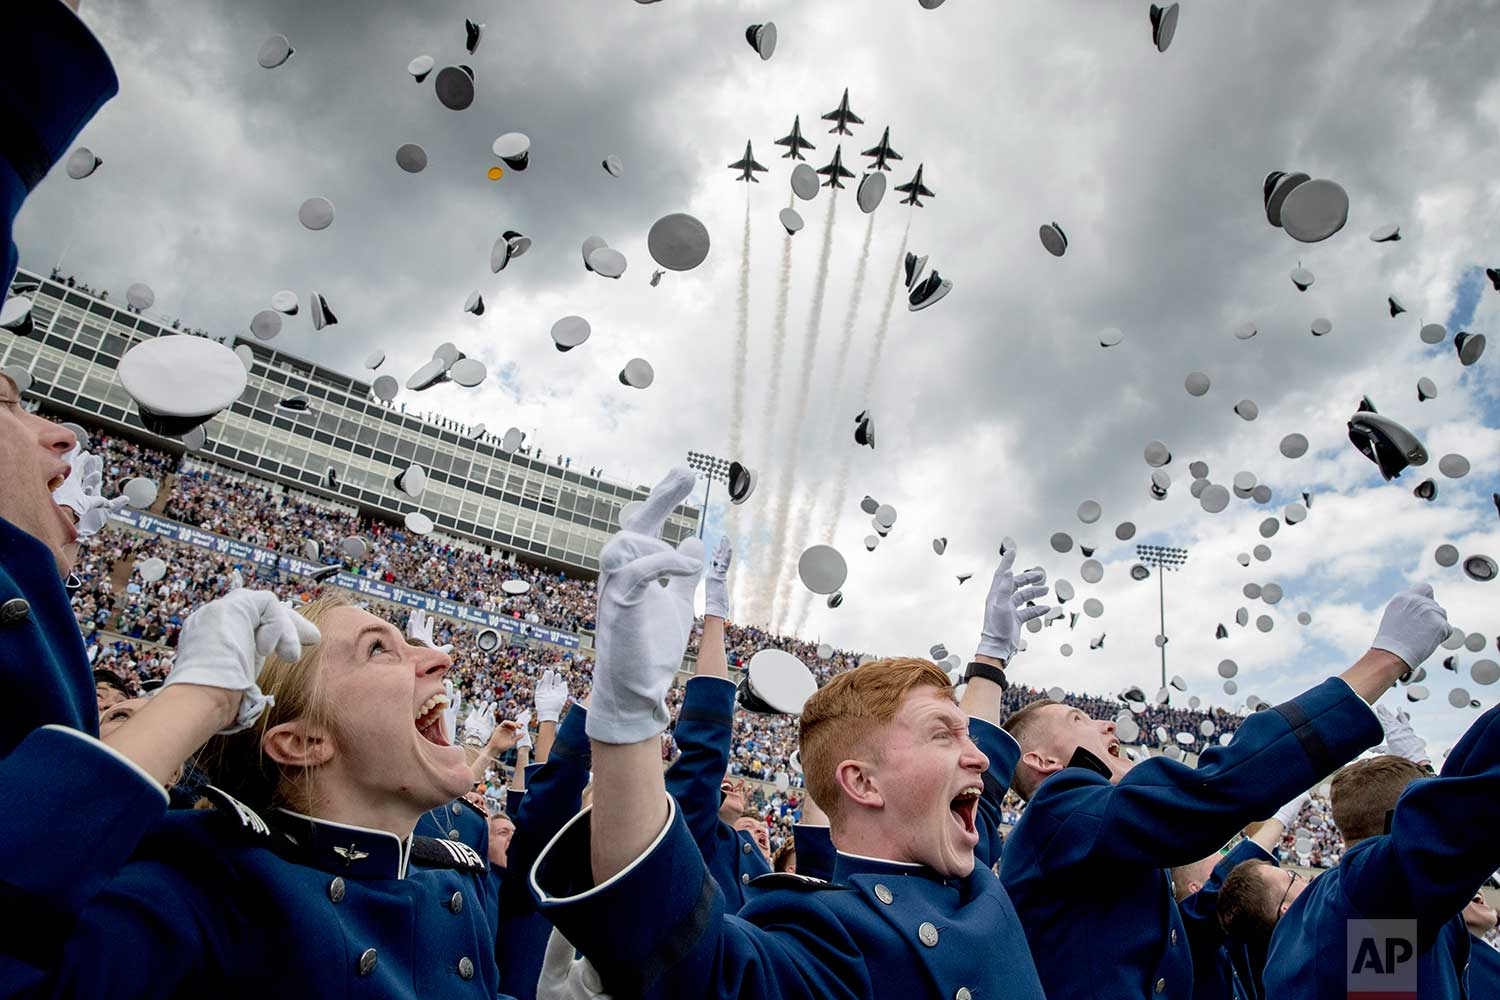 United States Air Force Academy cadets toss their hats in the air as the Thunderbirds fly overhead during the cadets' graduation ceremony at Falcon Stadium., Thursday, May 30, 2019, in Colorado Springs, Colo. (AP Photo/Andrew Harnik)